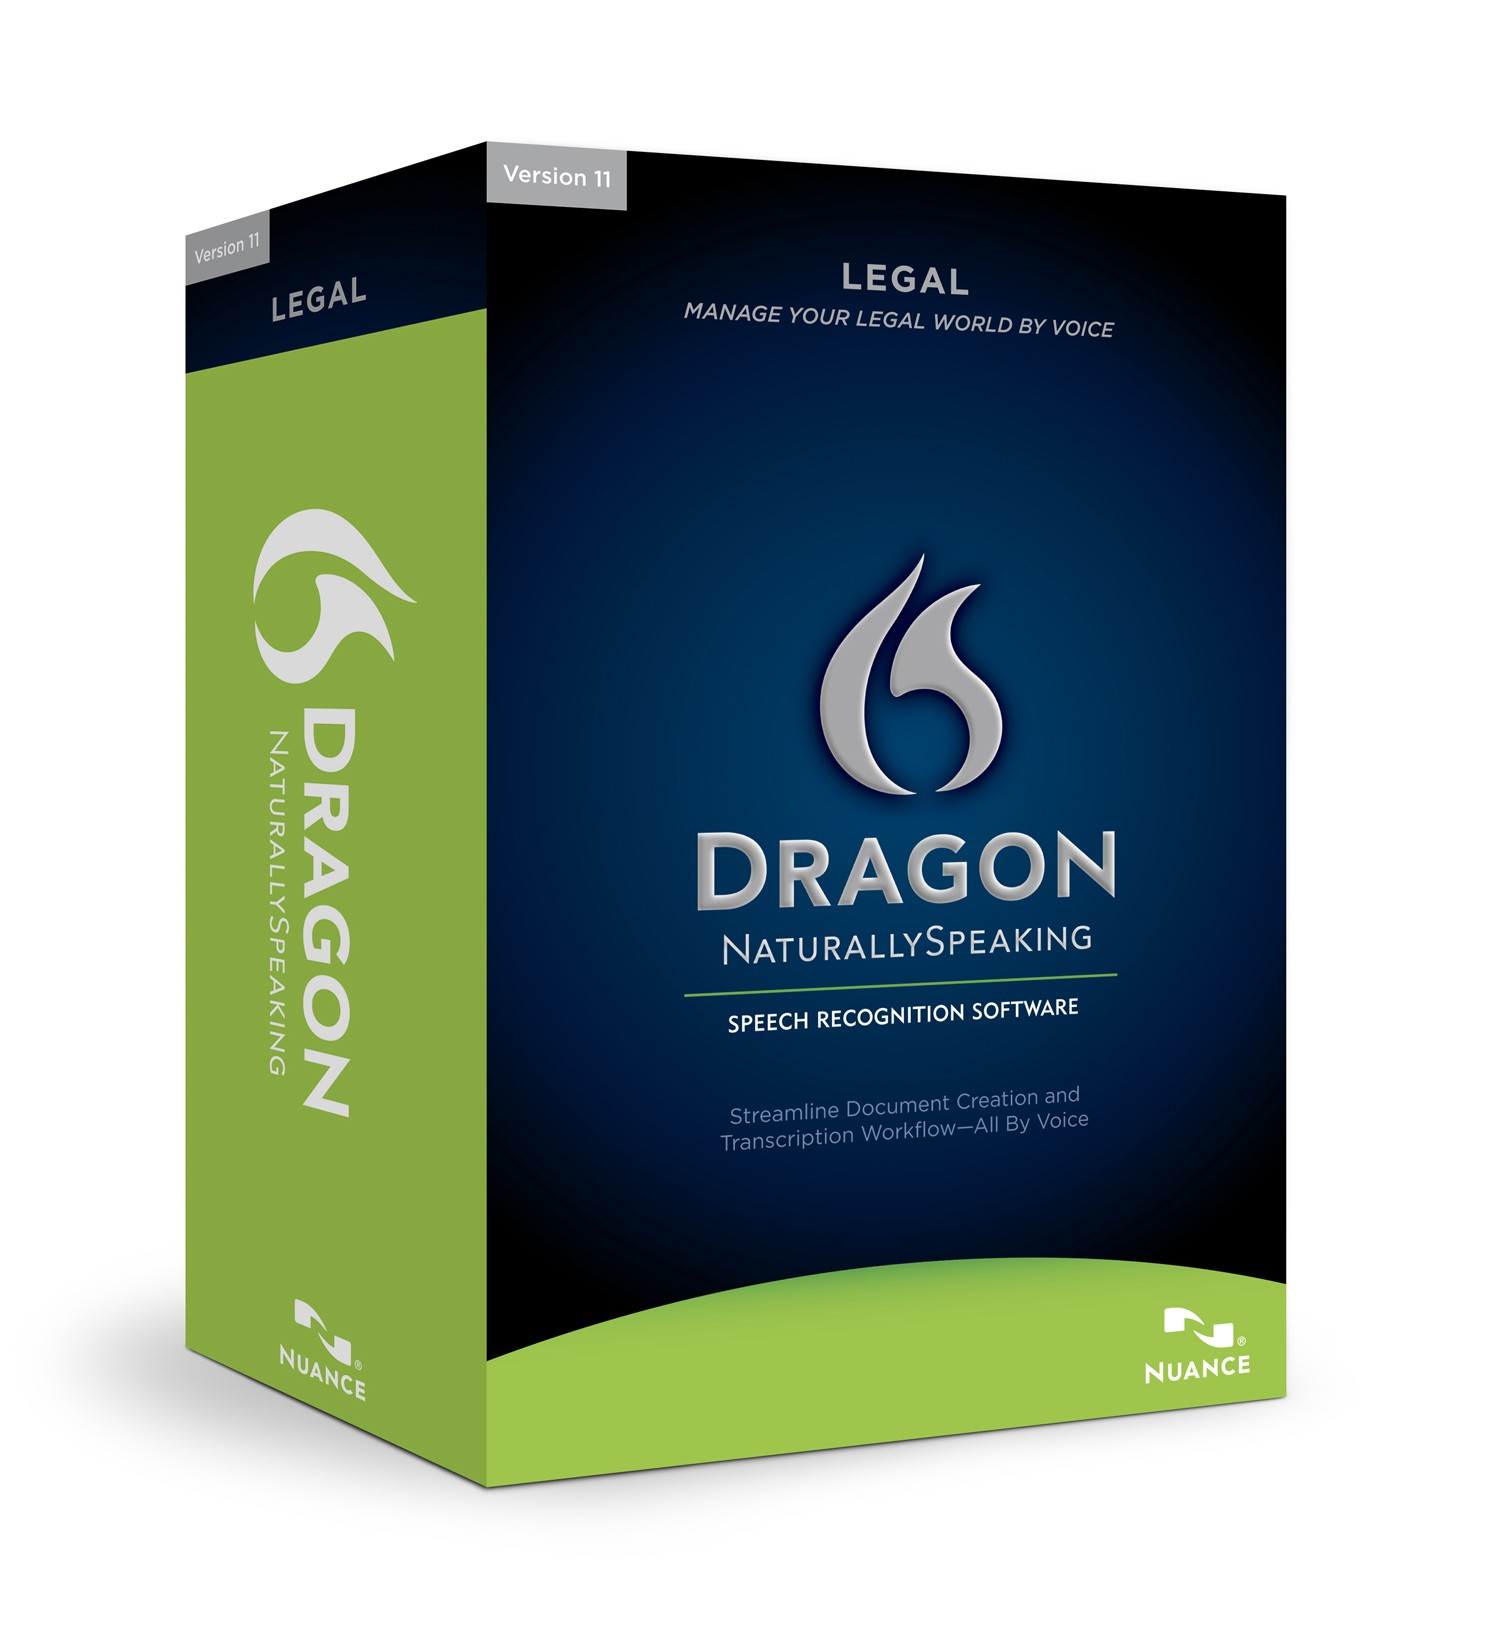 Nuance Dragon NaturallySpeaking 13 For Windows Crack Free